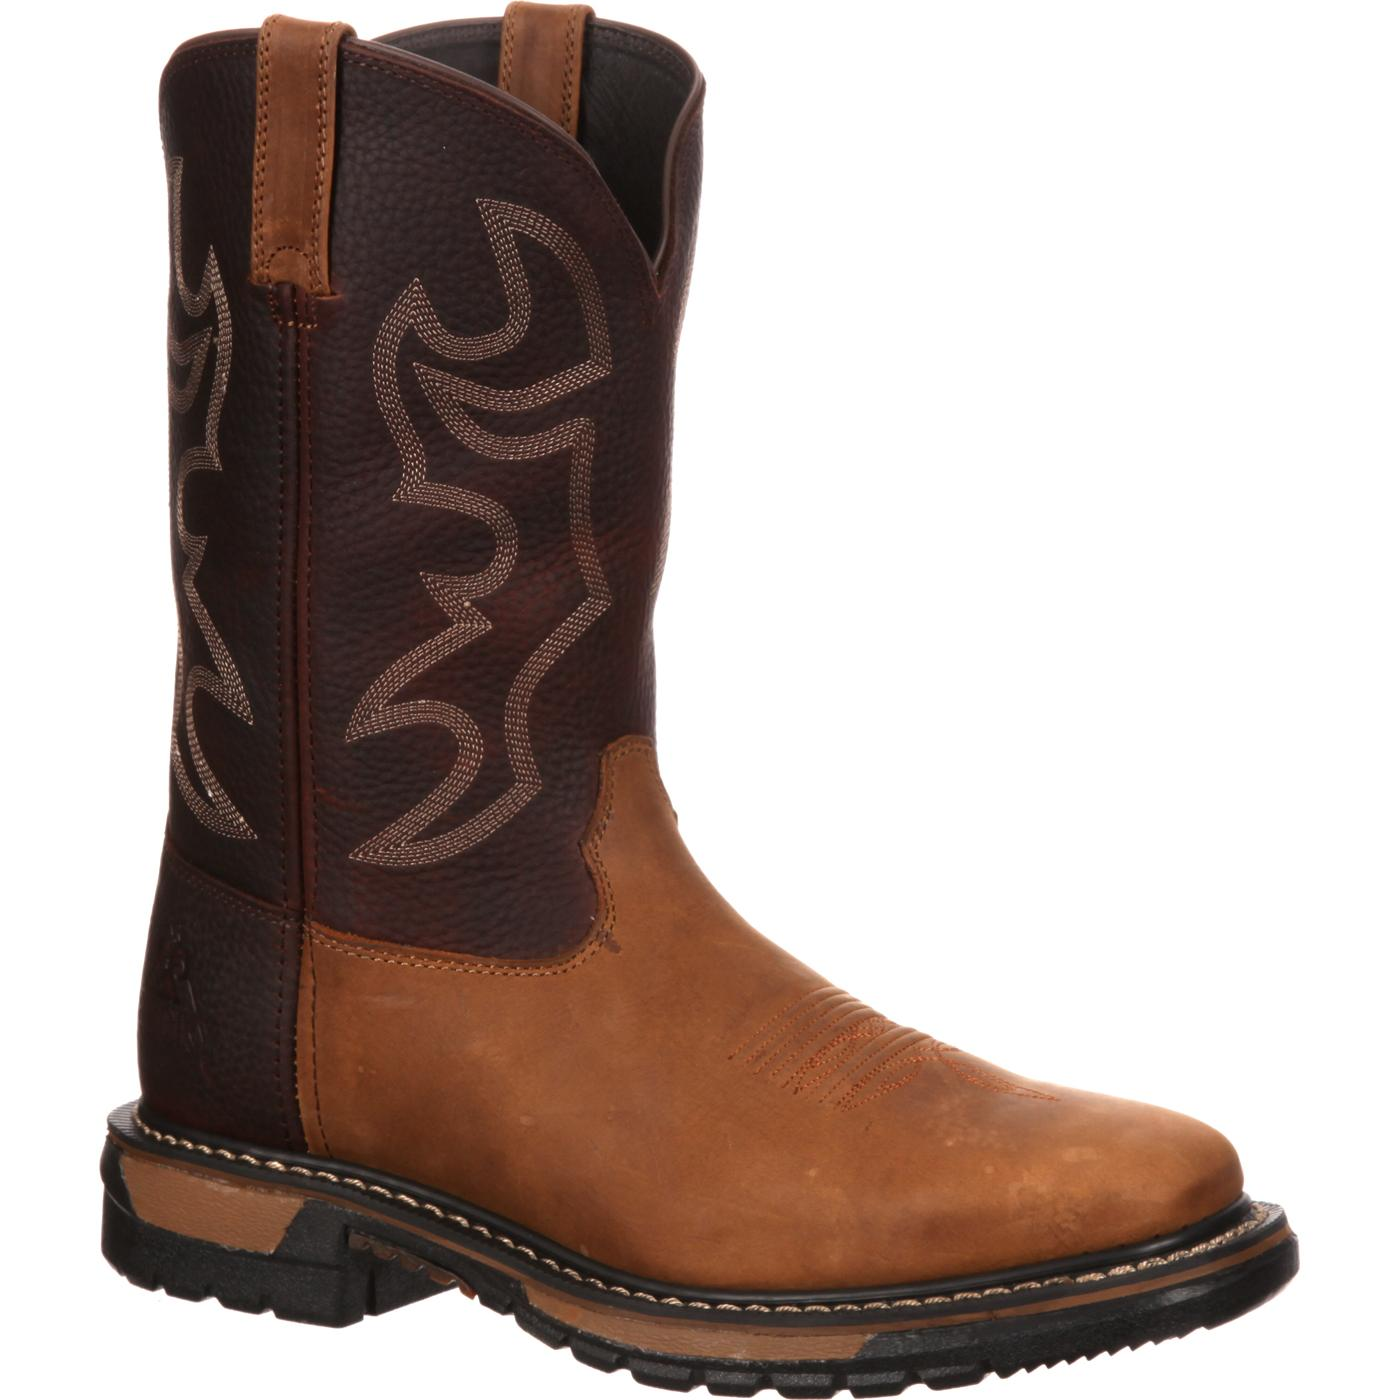 b7965e5d1c10f Rocky Original Ride Western Boots for comfort